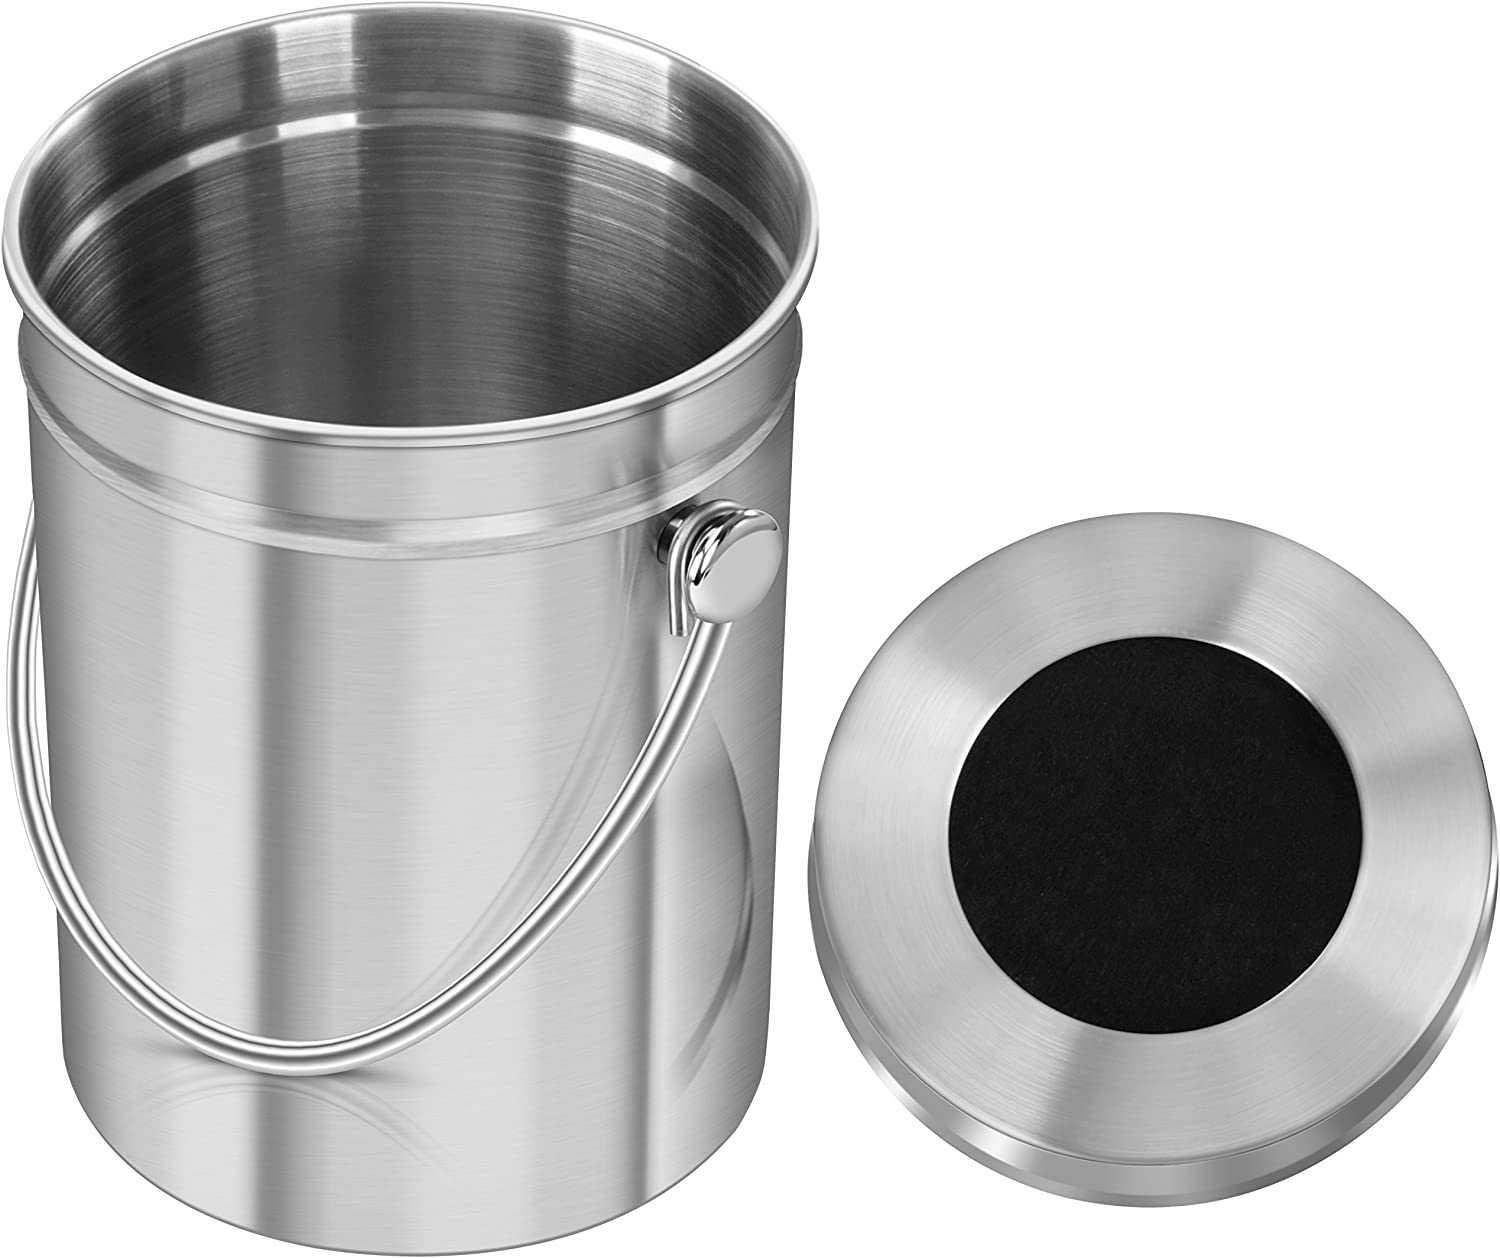 Utopia Kitchen Stainless Steel Compost Bin for Kitchen Countertop - 1.3 Gallon Compost Bucket for Kitchen with Lid - Includes 1 Spare Charcoal Filter: Kitchen & Dining